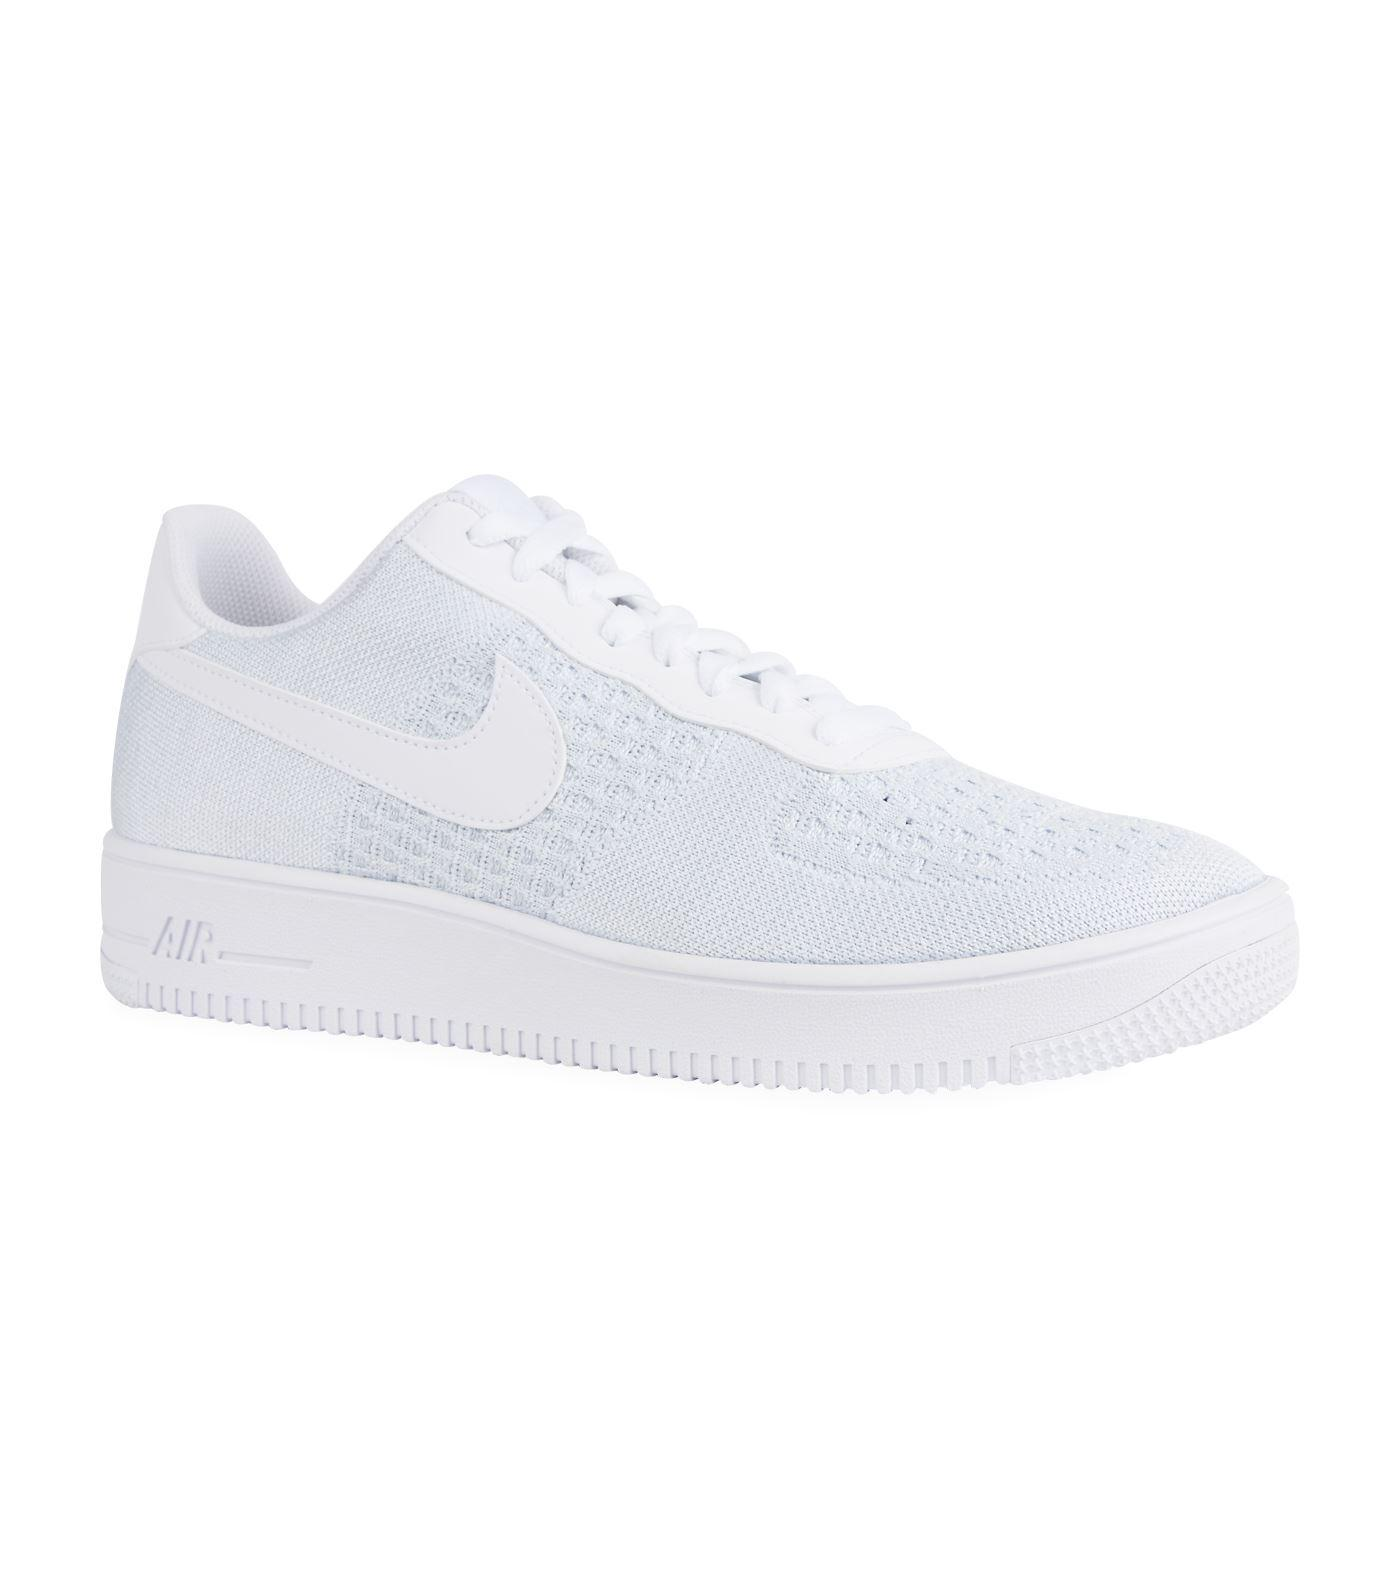 Nike Rubber Air Force 1 Flyknit 2.0 in White for Men - Lyst